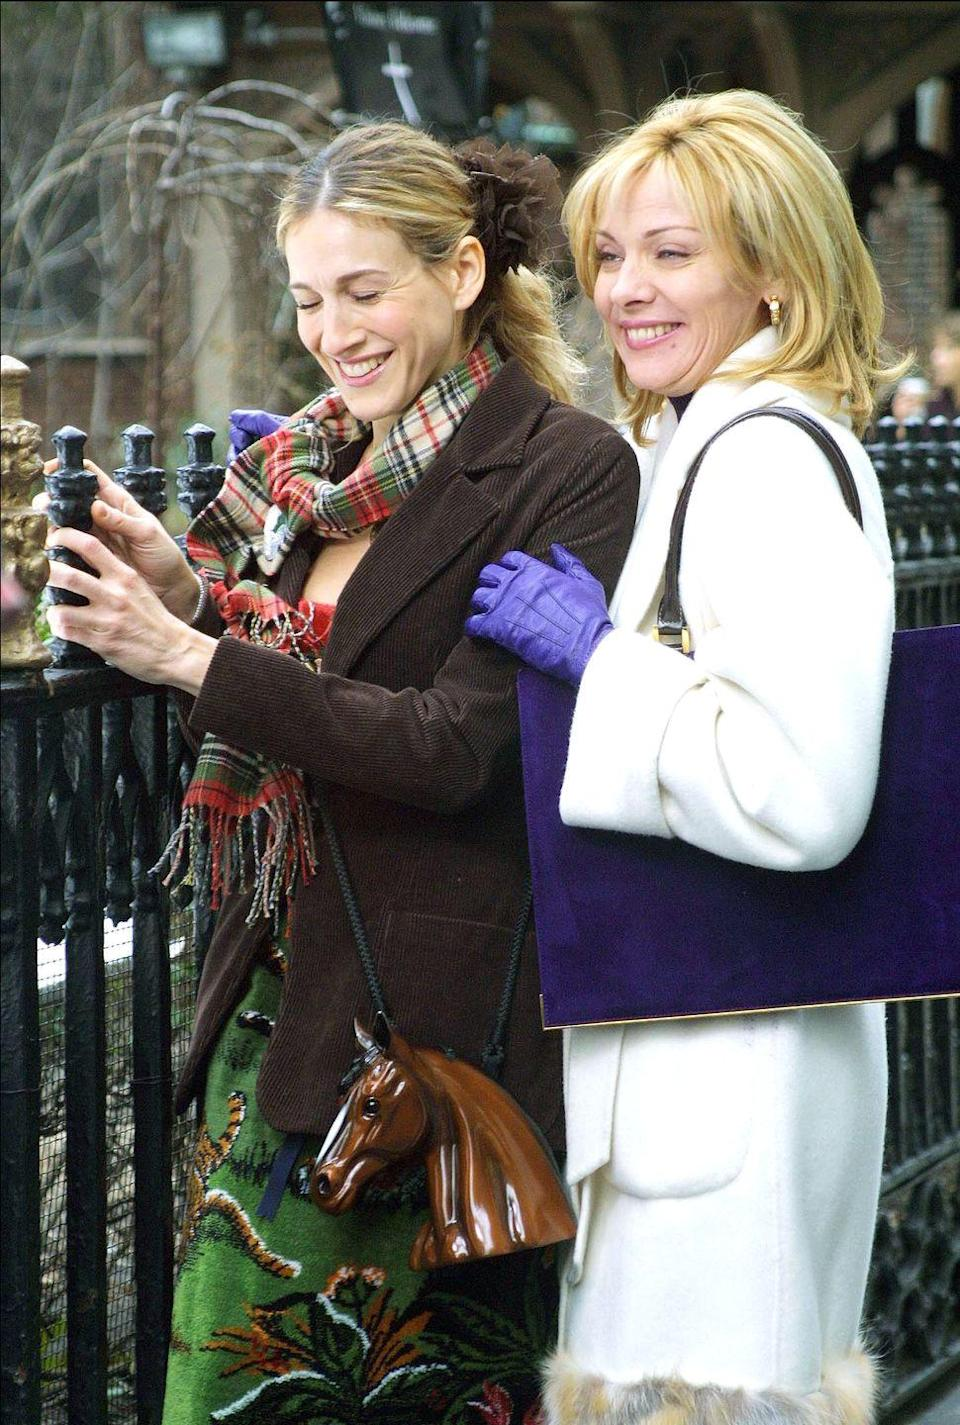 """<p>In an <em><a href=""""https://www.etonline.com/kim-cattrall-on-why-fans-still-want-more-sex-and-the-city-films-exclusive-130095"""" rel=""""nofollow noopener"""" target=""""_blank"""" data-ylk=""""slk:Entertainment Tonight"""" class=""""link rapid-noclick-resp"""">Entertainment Tonight</a> </em>interview for her new series, <em>Filthy Rich</em><em>, </em>Cattrall was asked why people still hunger for <em>Sex and the City</em>.</p><p>""""What I think people love about shows like <em>Sex in the City</em> and <em>Filthy Rich</em> is strong characters,"""" she said. """"You know, real strong characters. And this is a new chapter, this is another strong character. So I'm really enjoying that.""""</p>"""